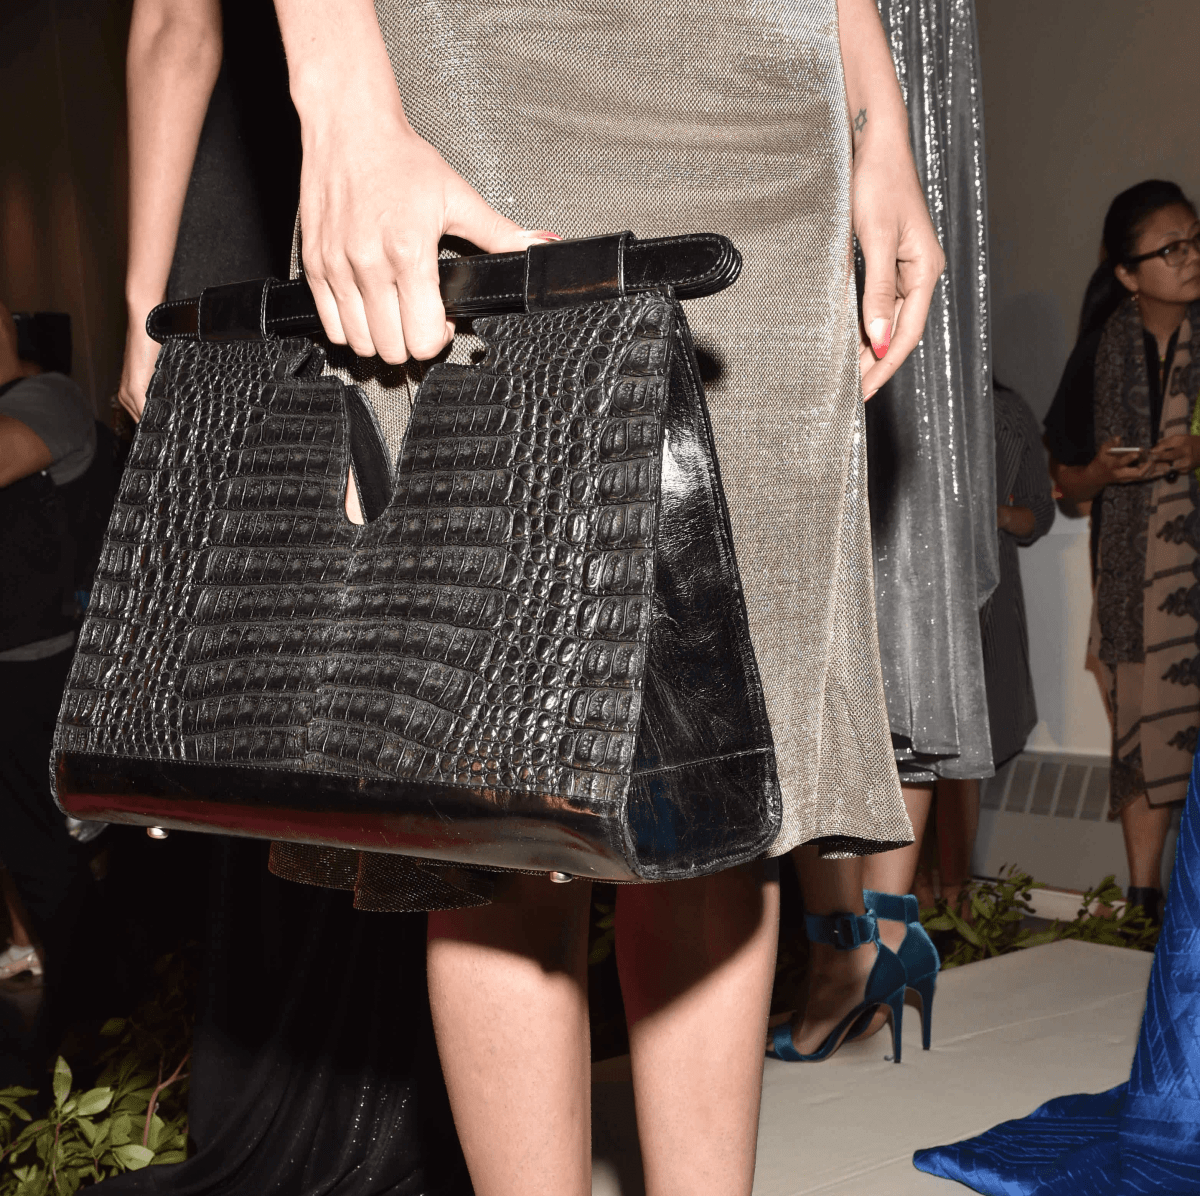 Elizabeth Purpich Collection Longhorn black crocodile handbag at Cesar Galindo Collection